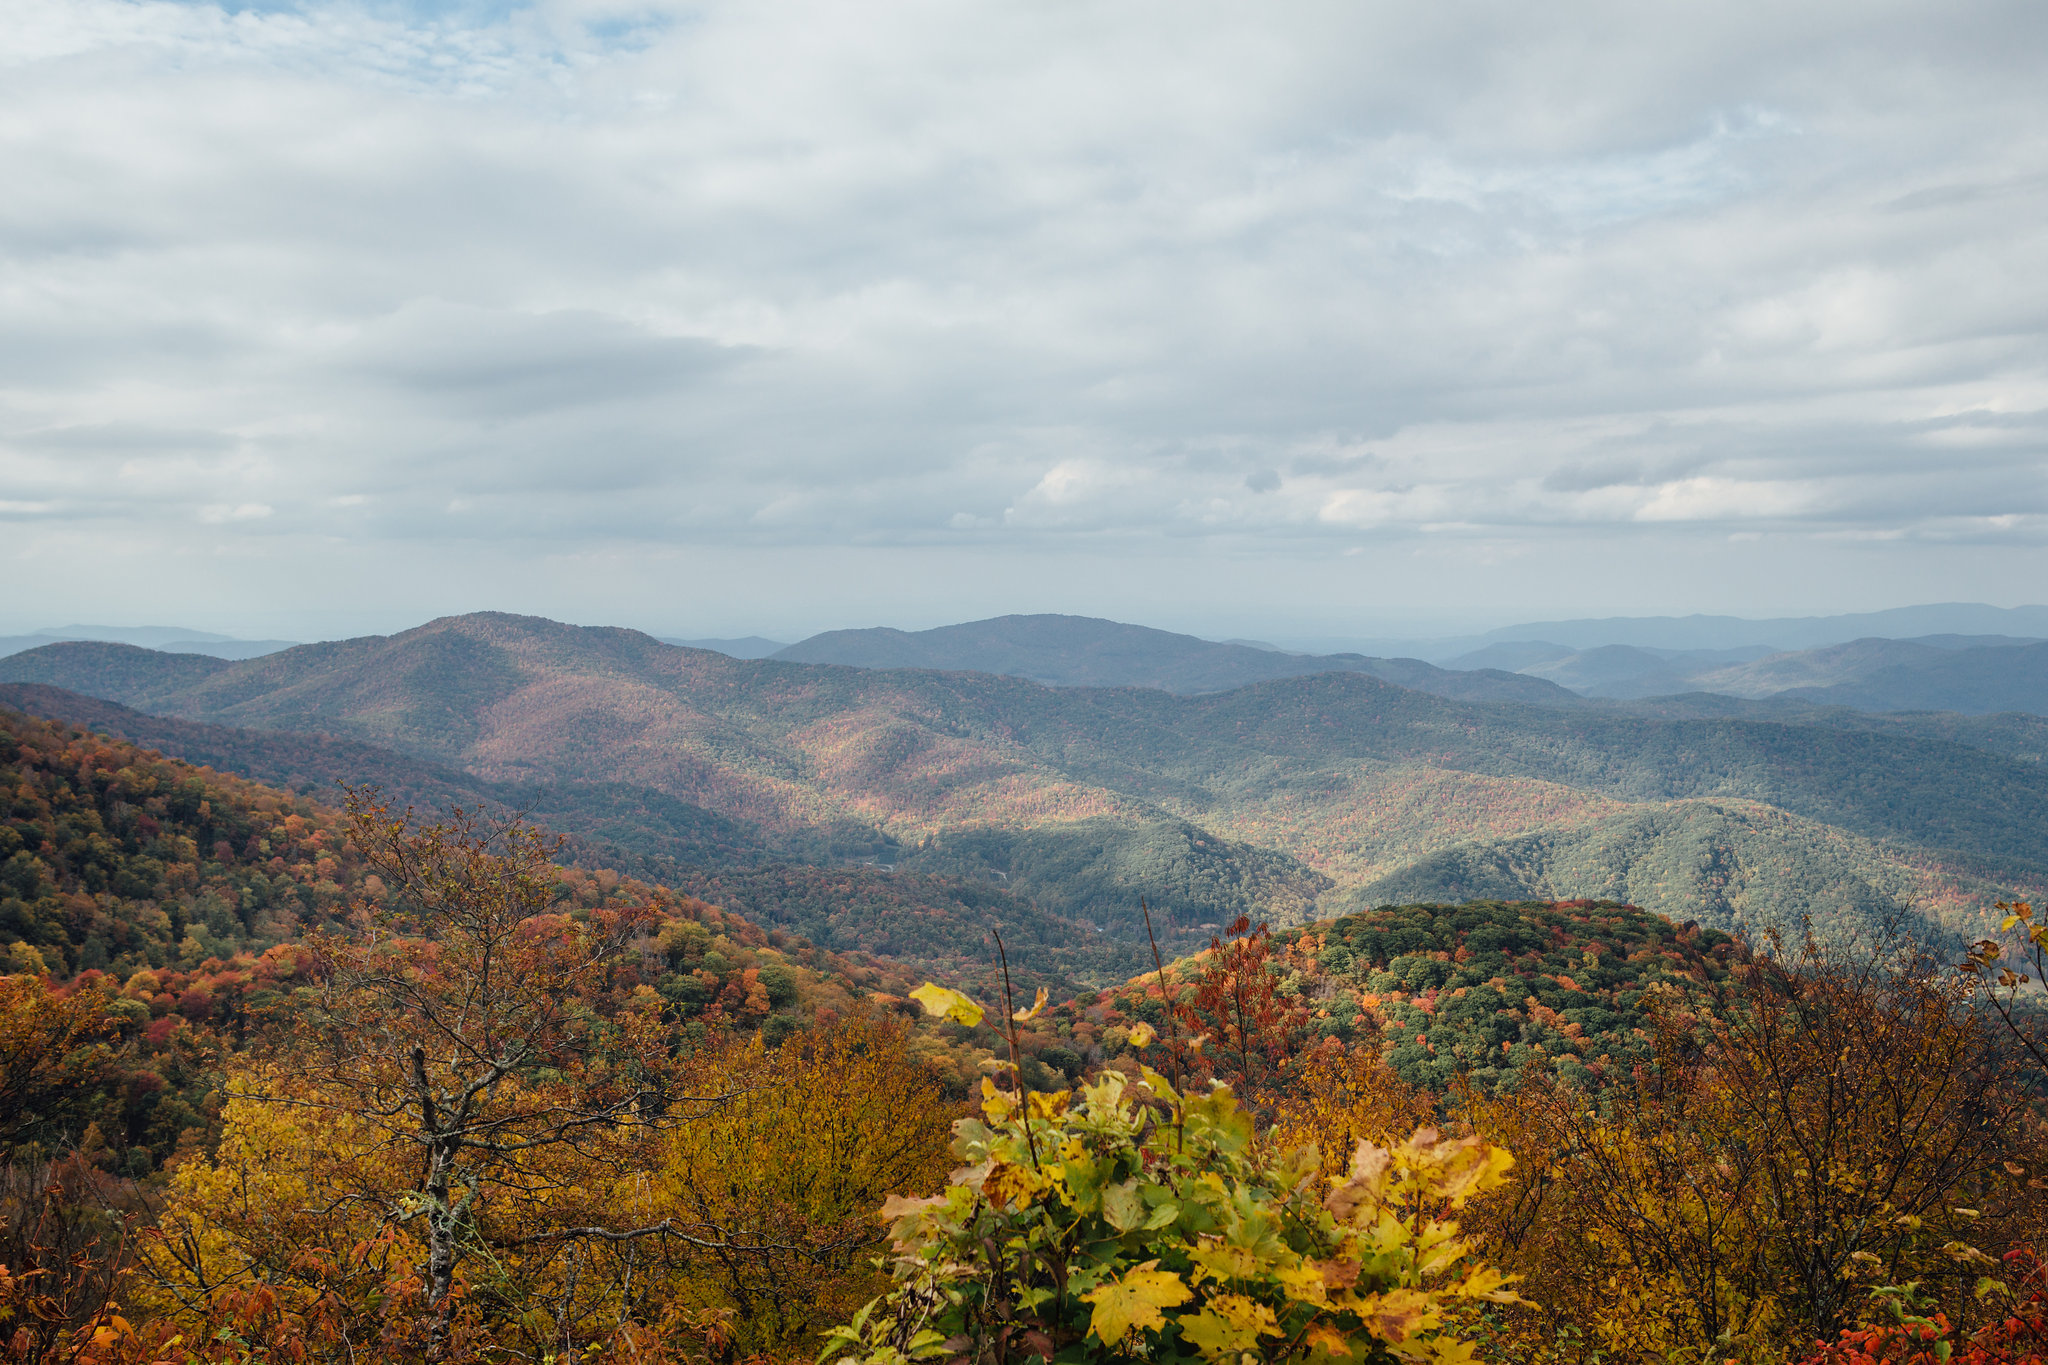 Carvers Gap on the Appalachian Trail